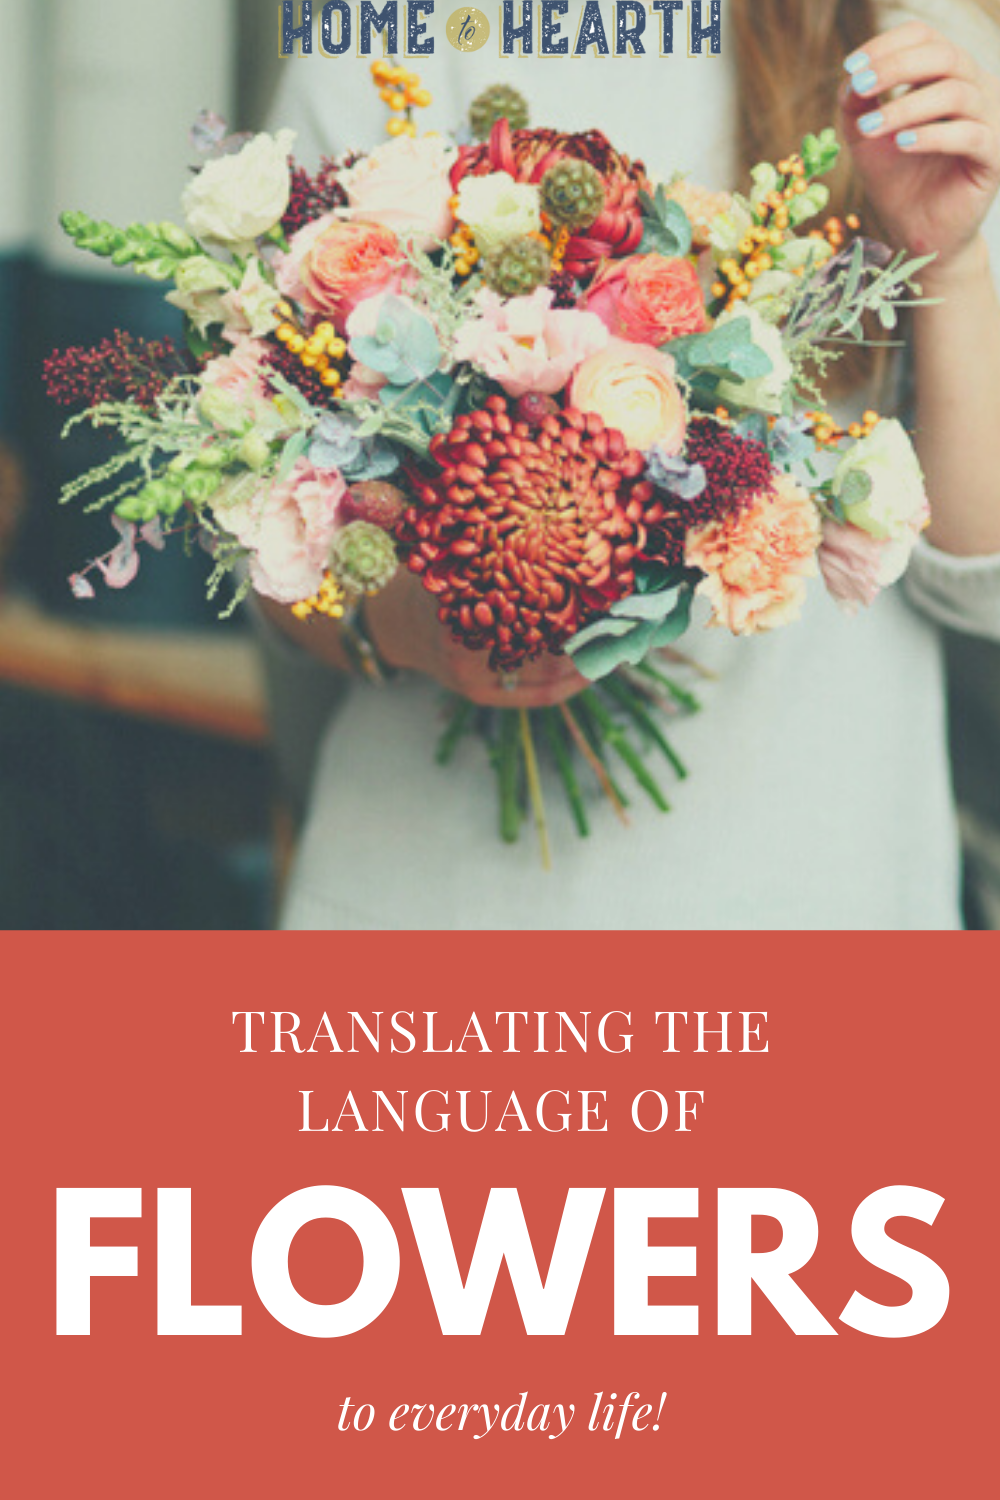 Translating the Language of Flowers to Everyday Life in